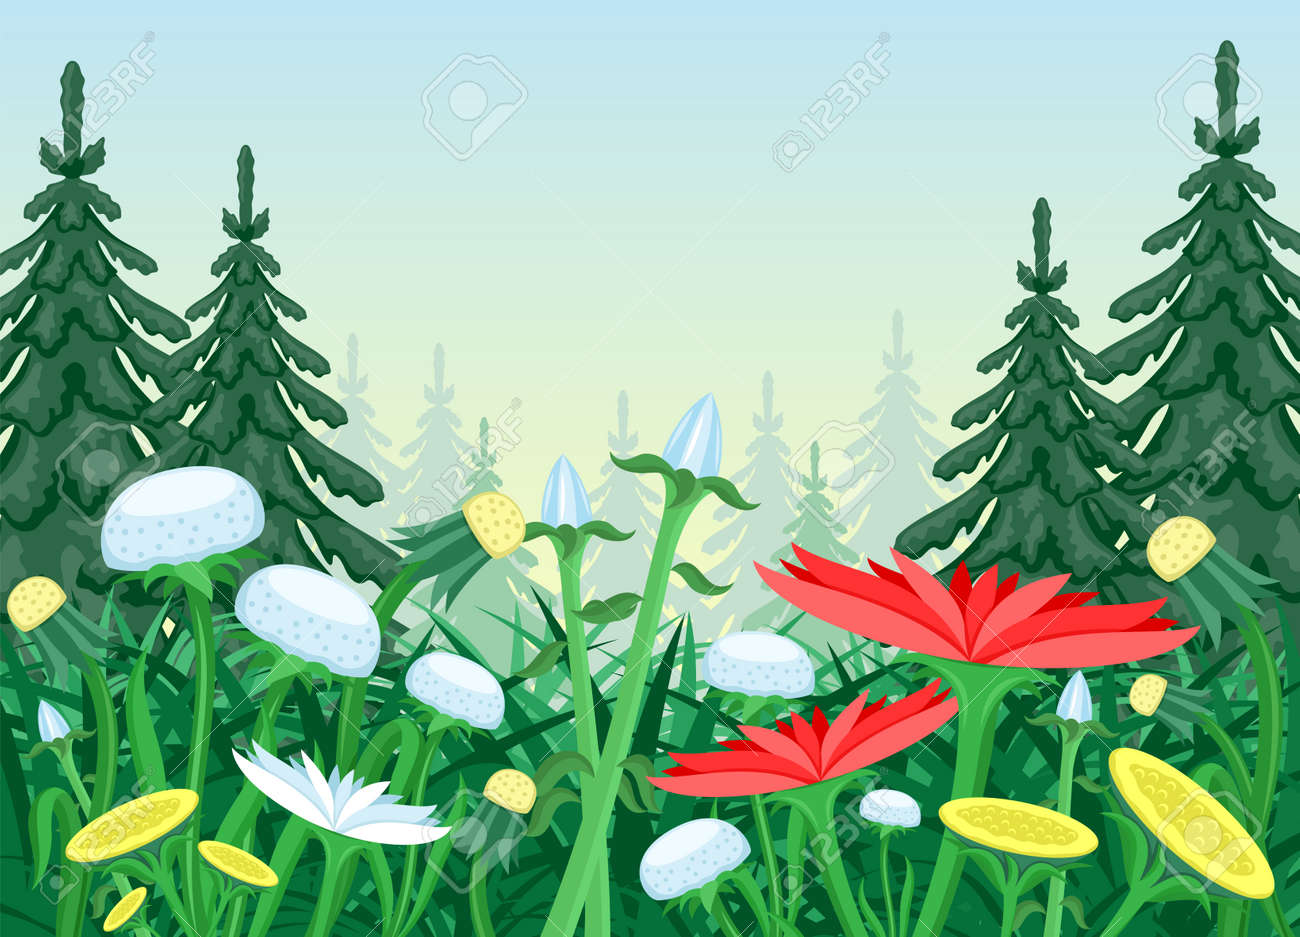 Nature illustration with flower meadow in coniferous forest. - 167402514